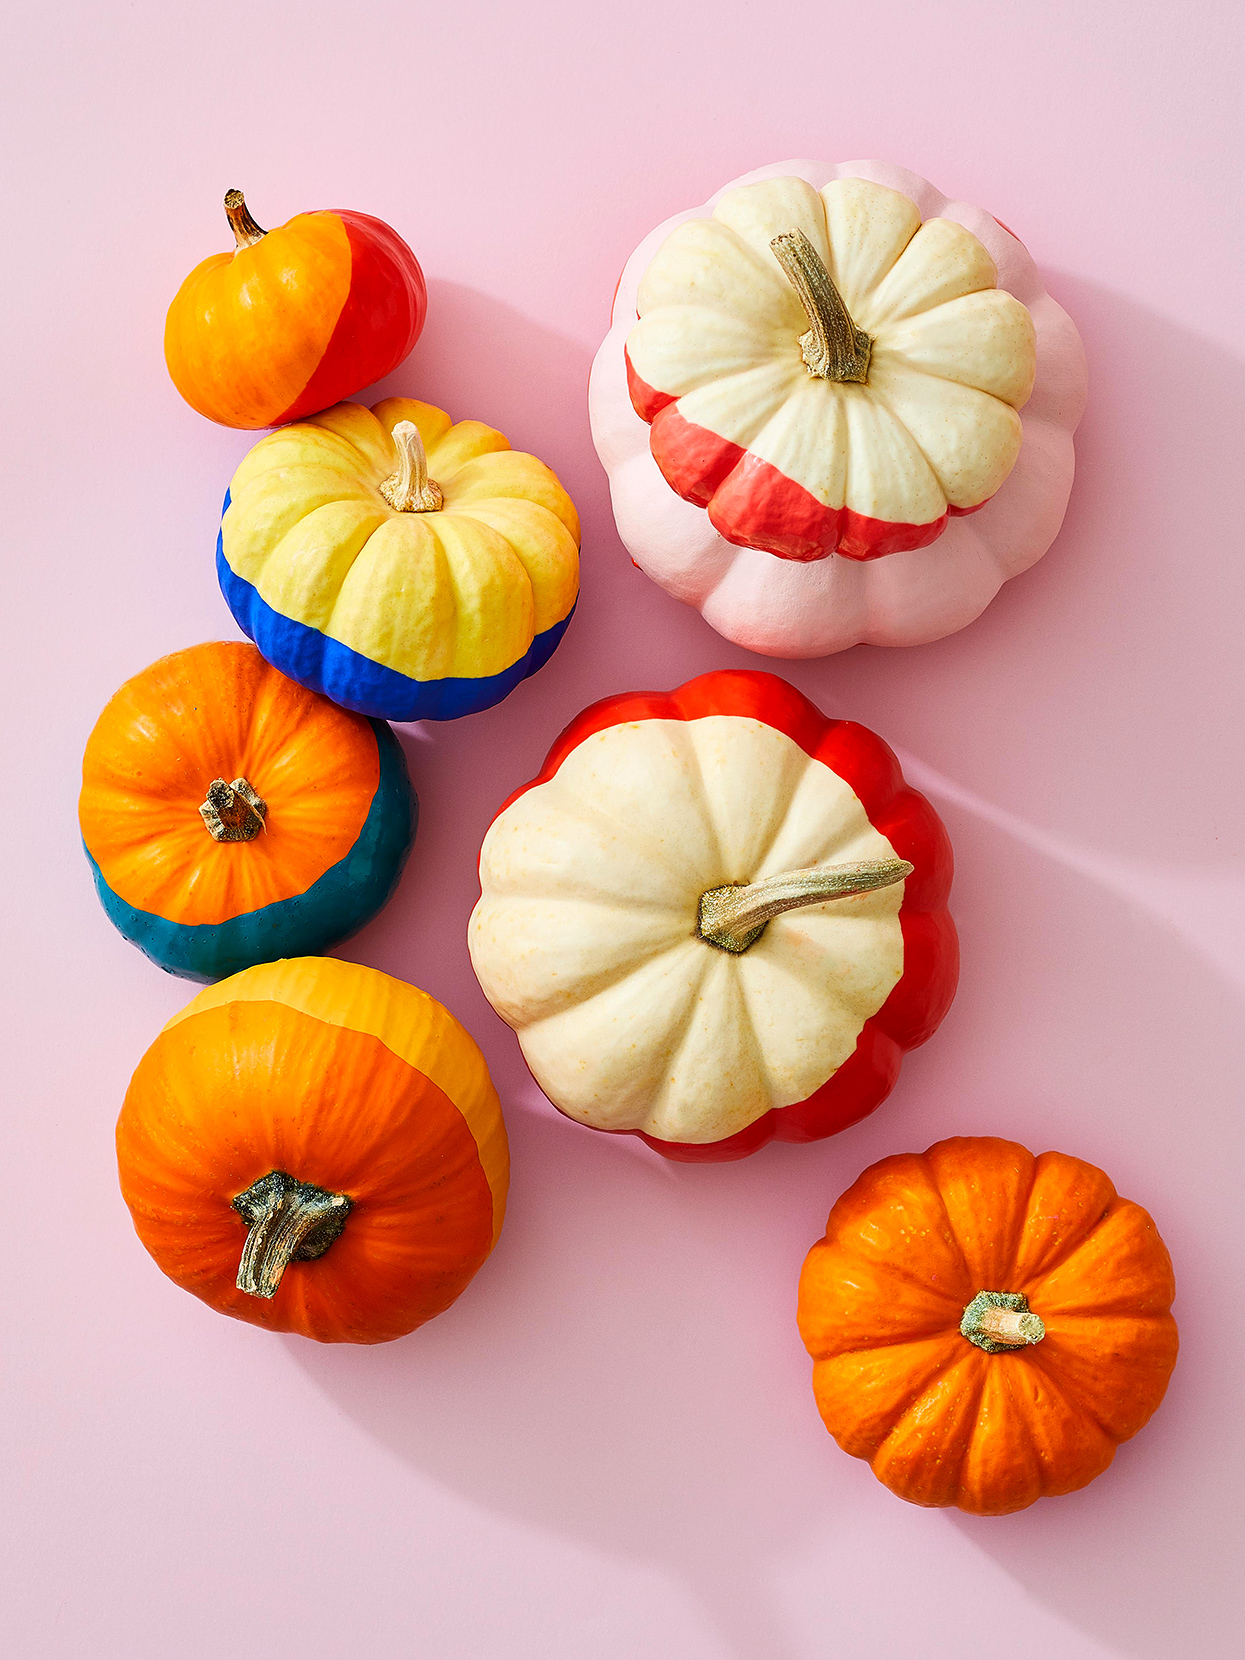 small colorblock pumpkins on pink background